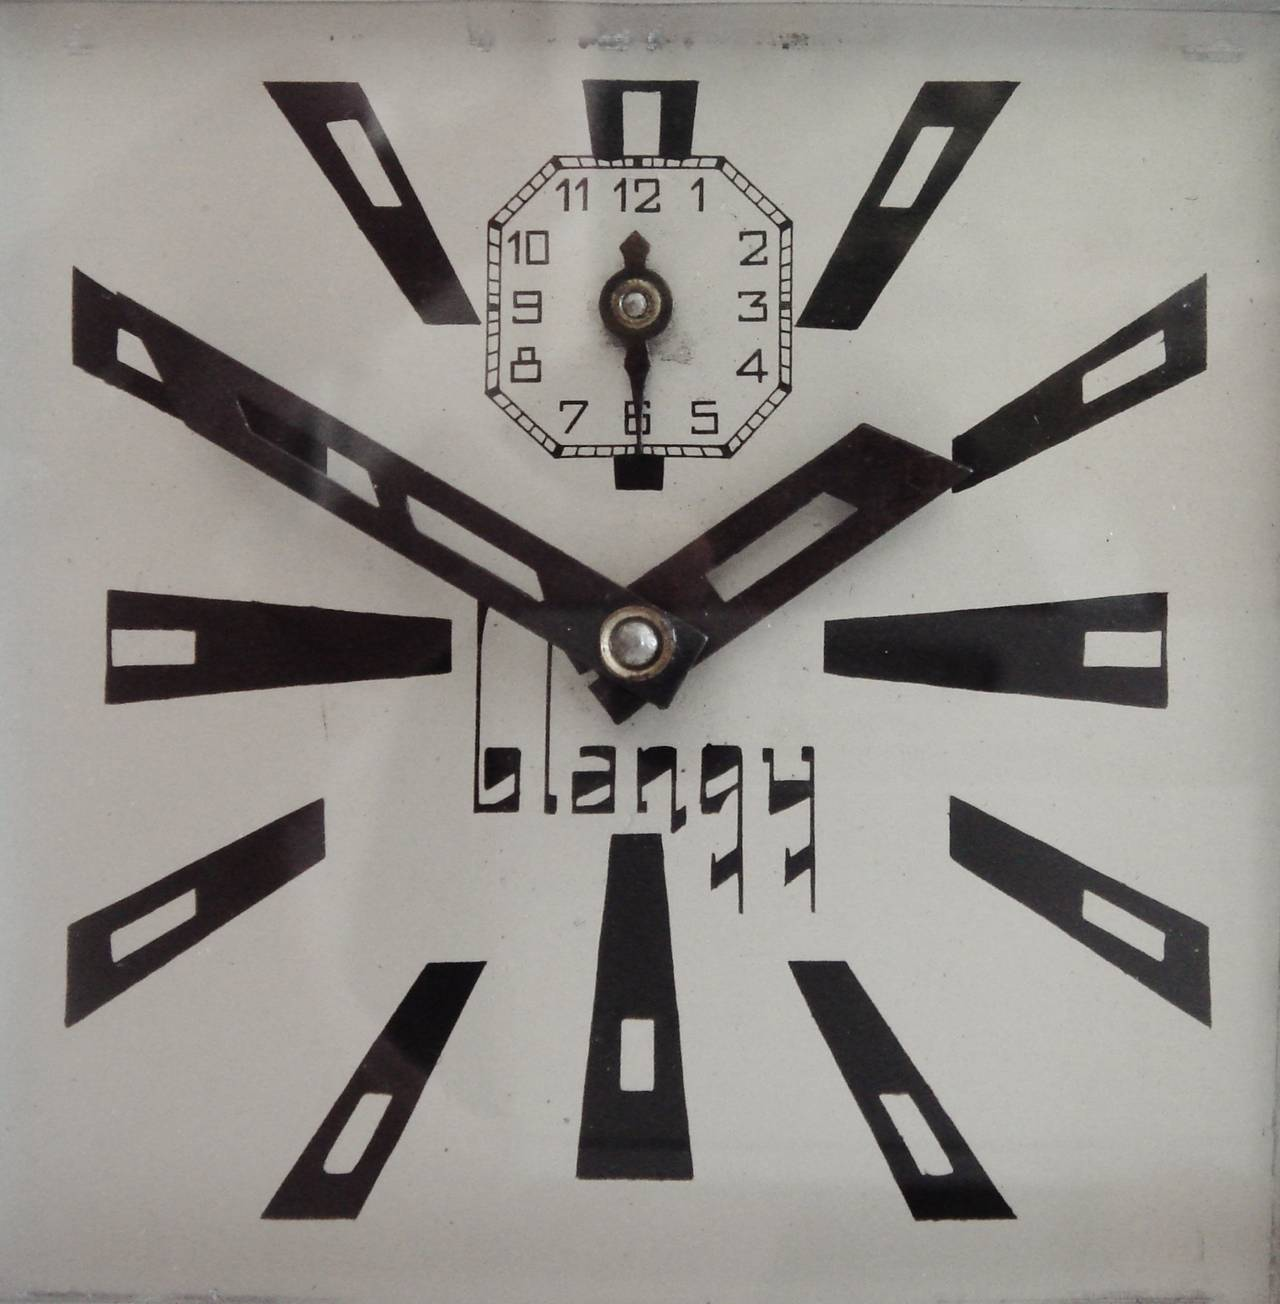 This is one fine looking ultra Art Deco styled French alarm clock from its radical flat chrome fretted front panel to the typographical design triumph of its numerals and hands. Even the wordmark of the manufacturer, Blangy, is extreme in its style